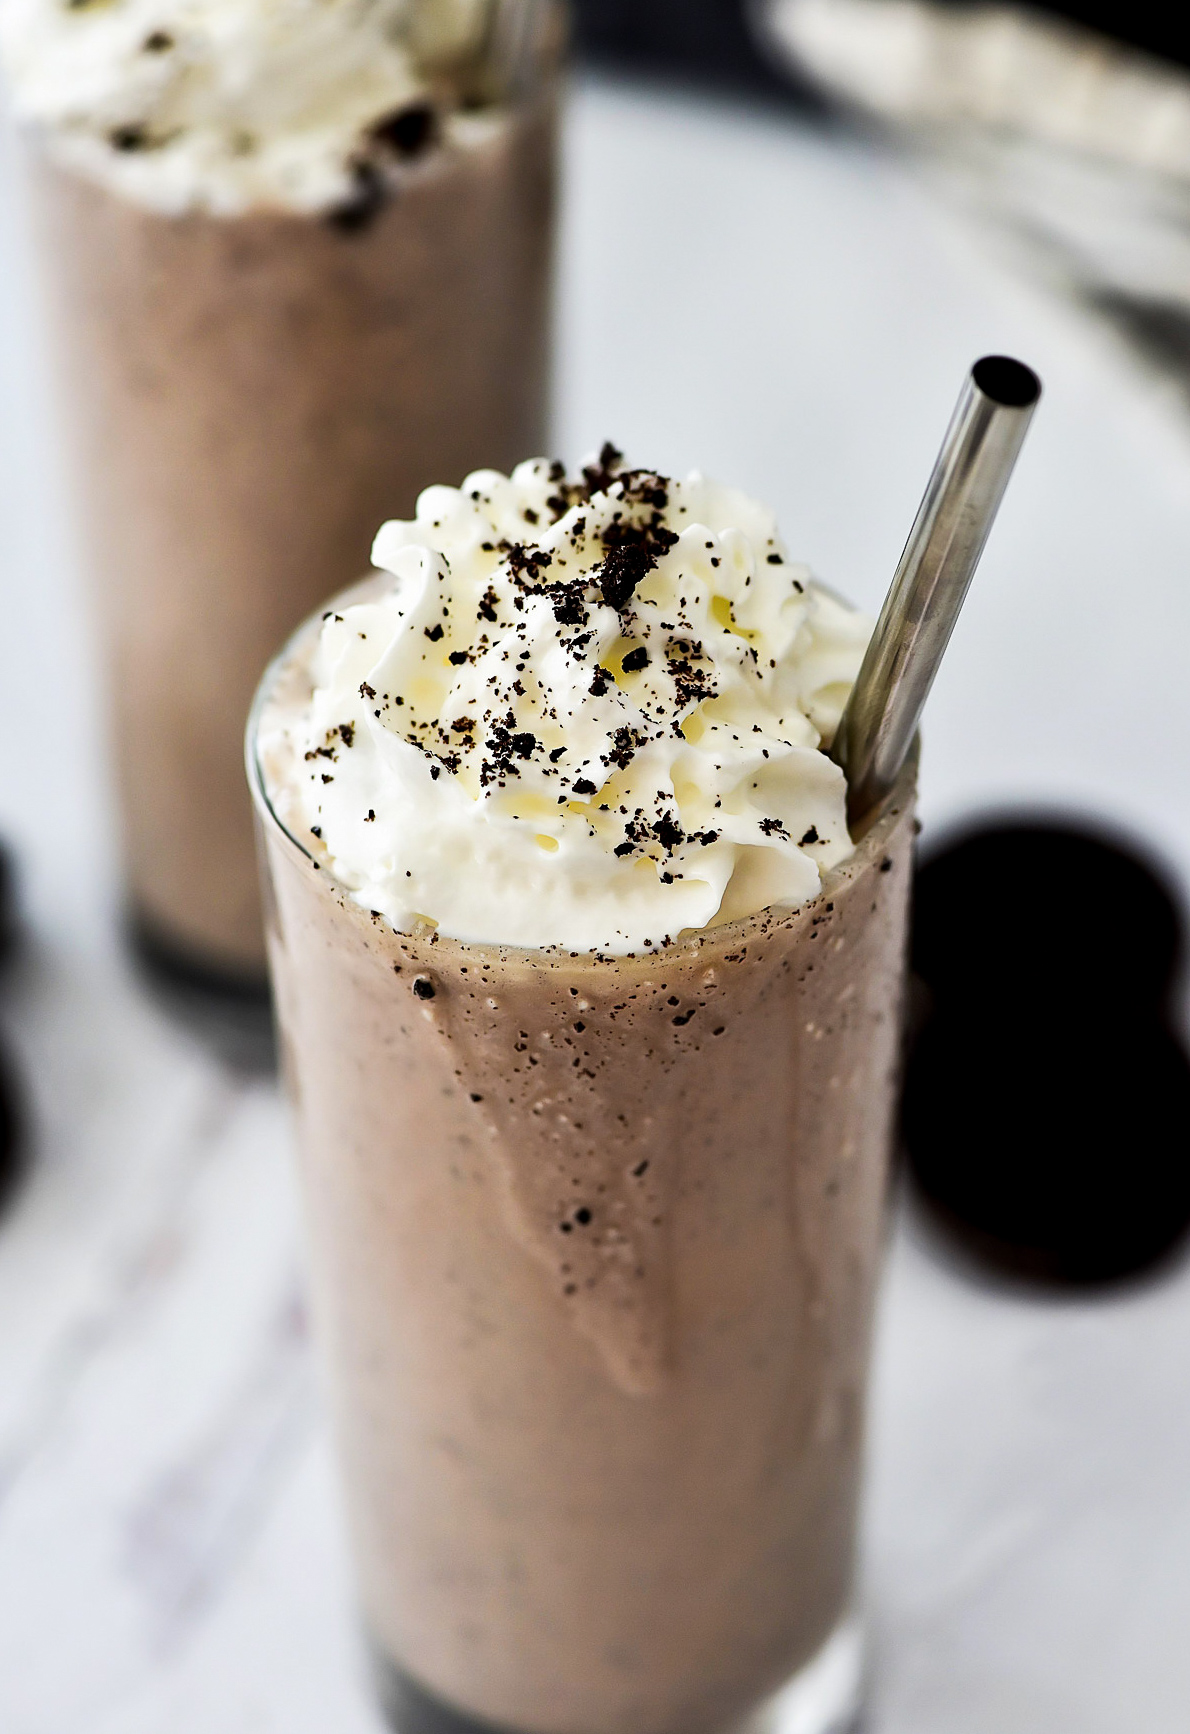 Oreo Chocolate Milkshakes that have fewer calories and fat.